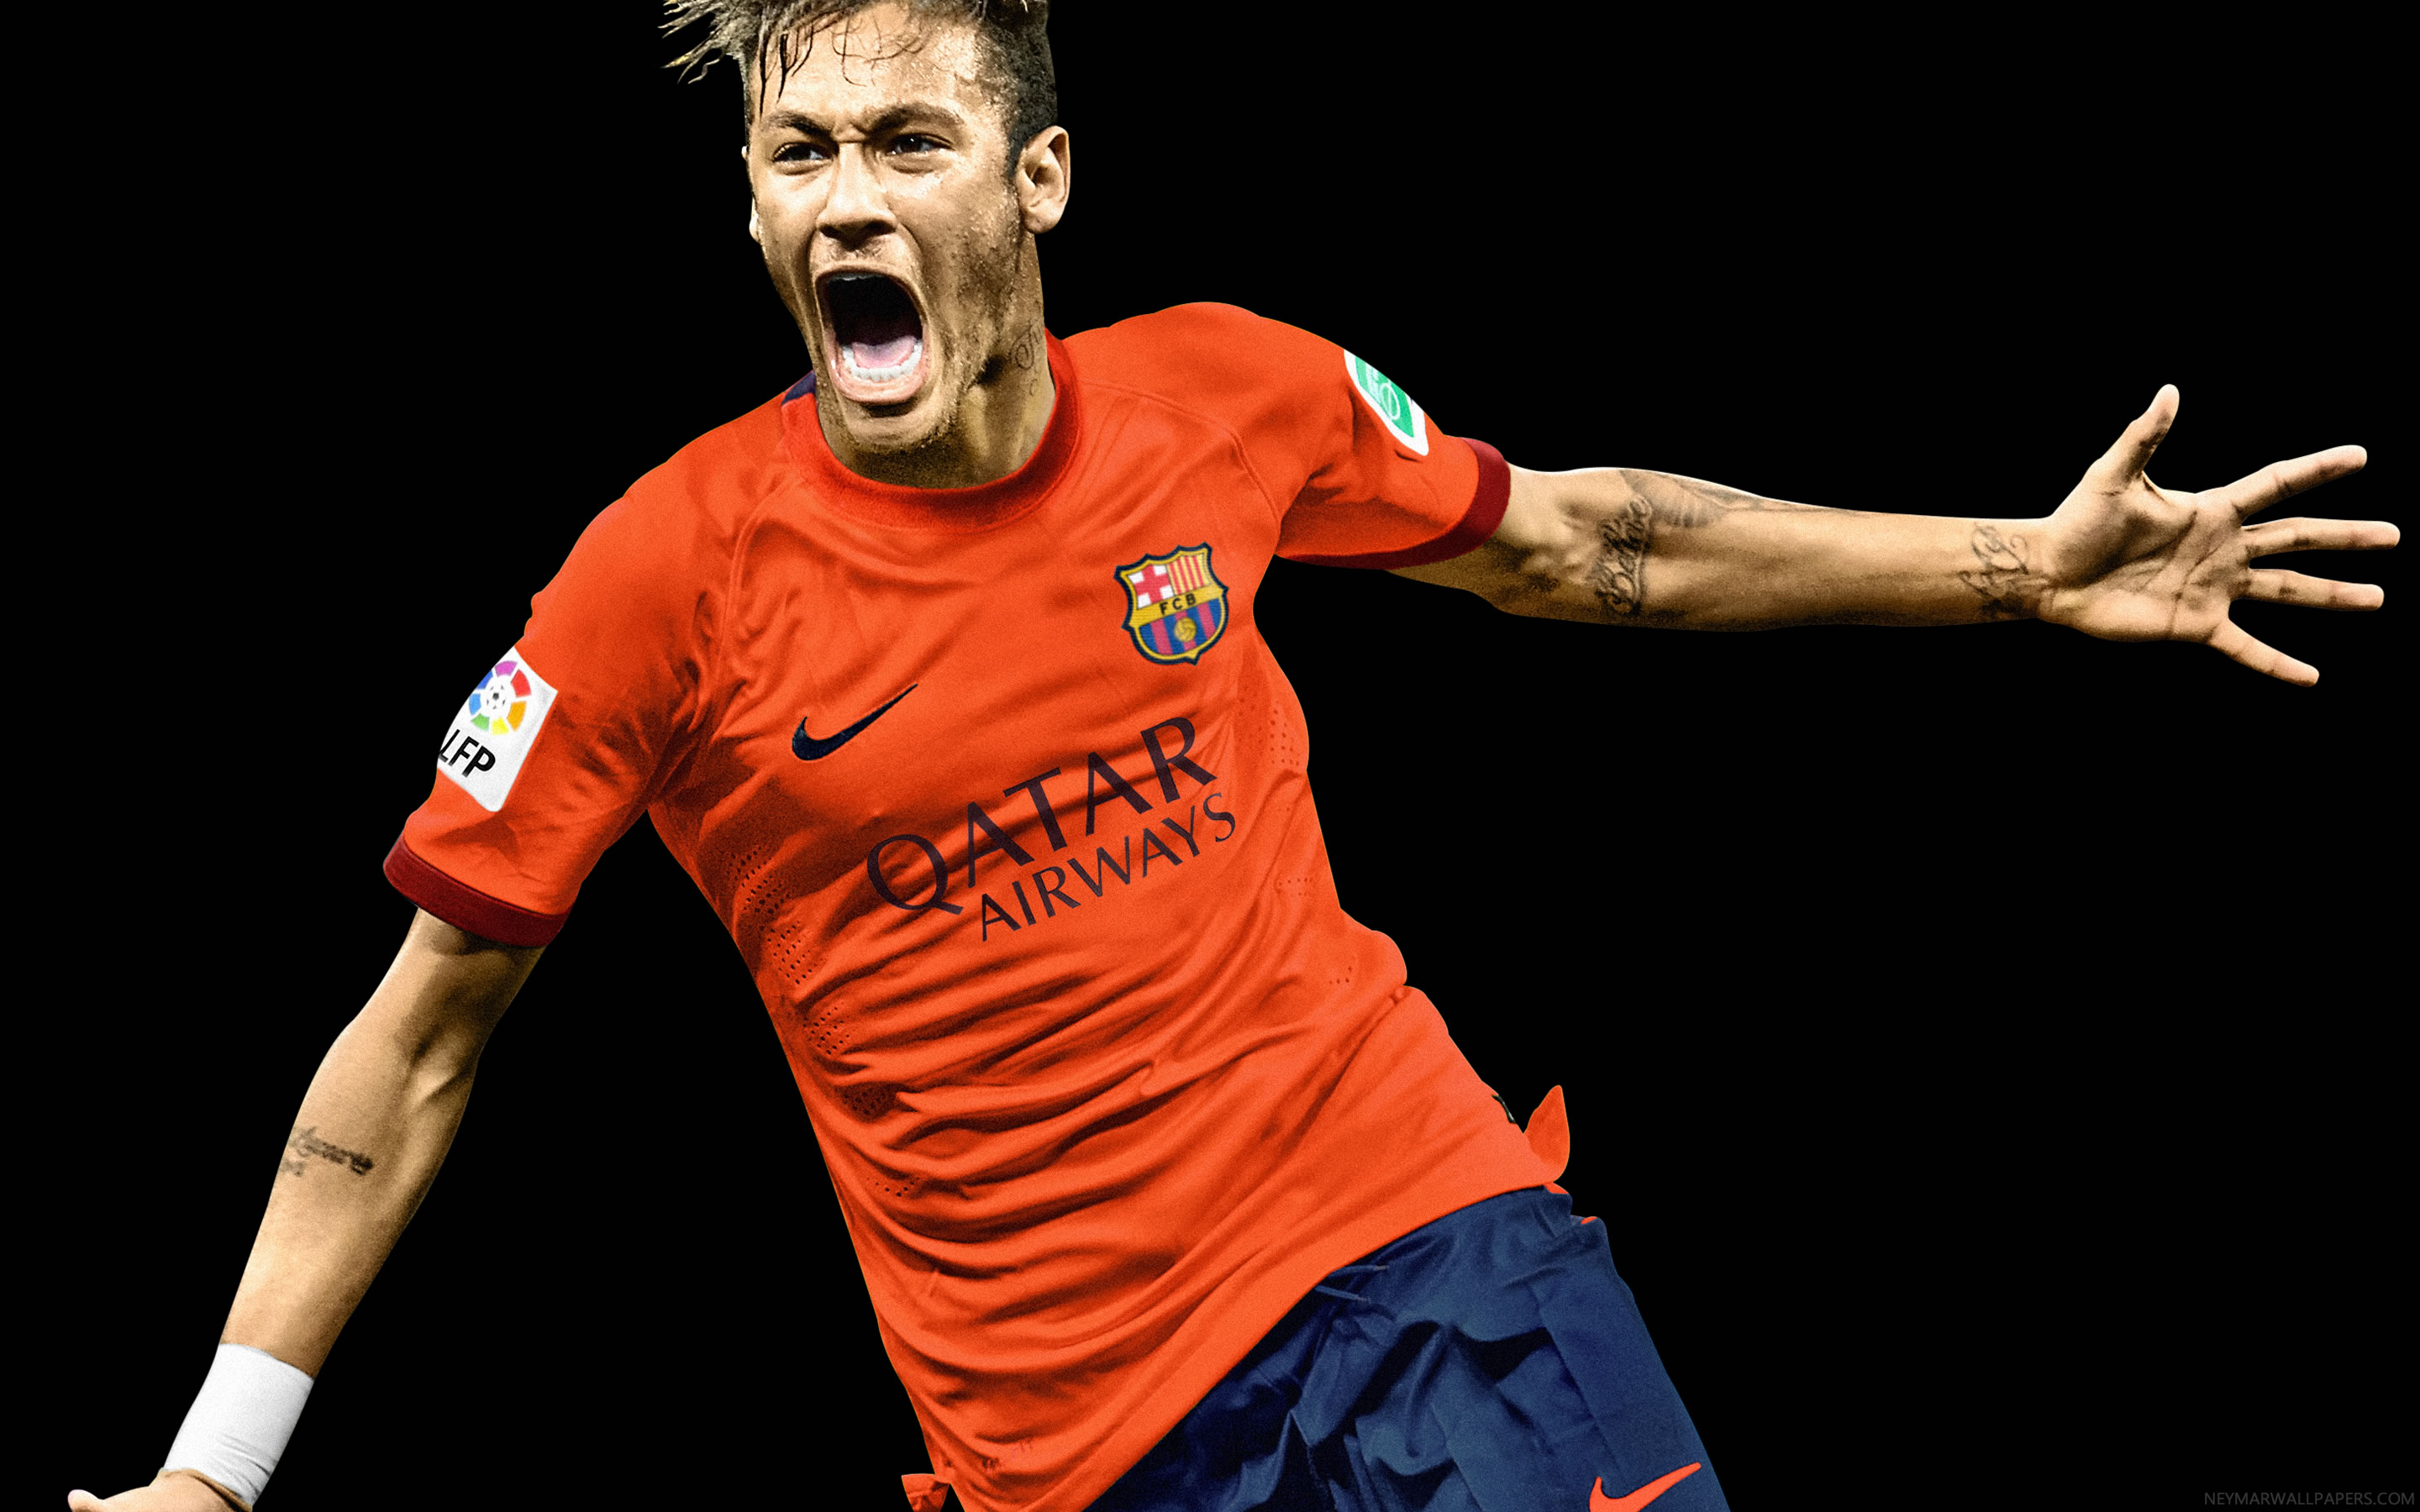 Wallpaper iphone neymar - Neymar Screaming Wallpaper 2015